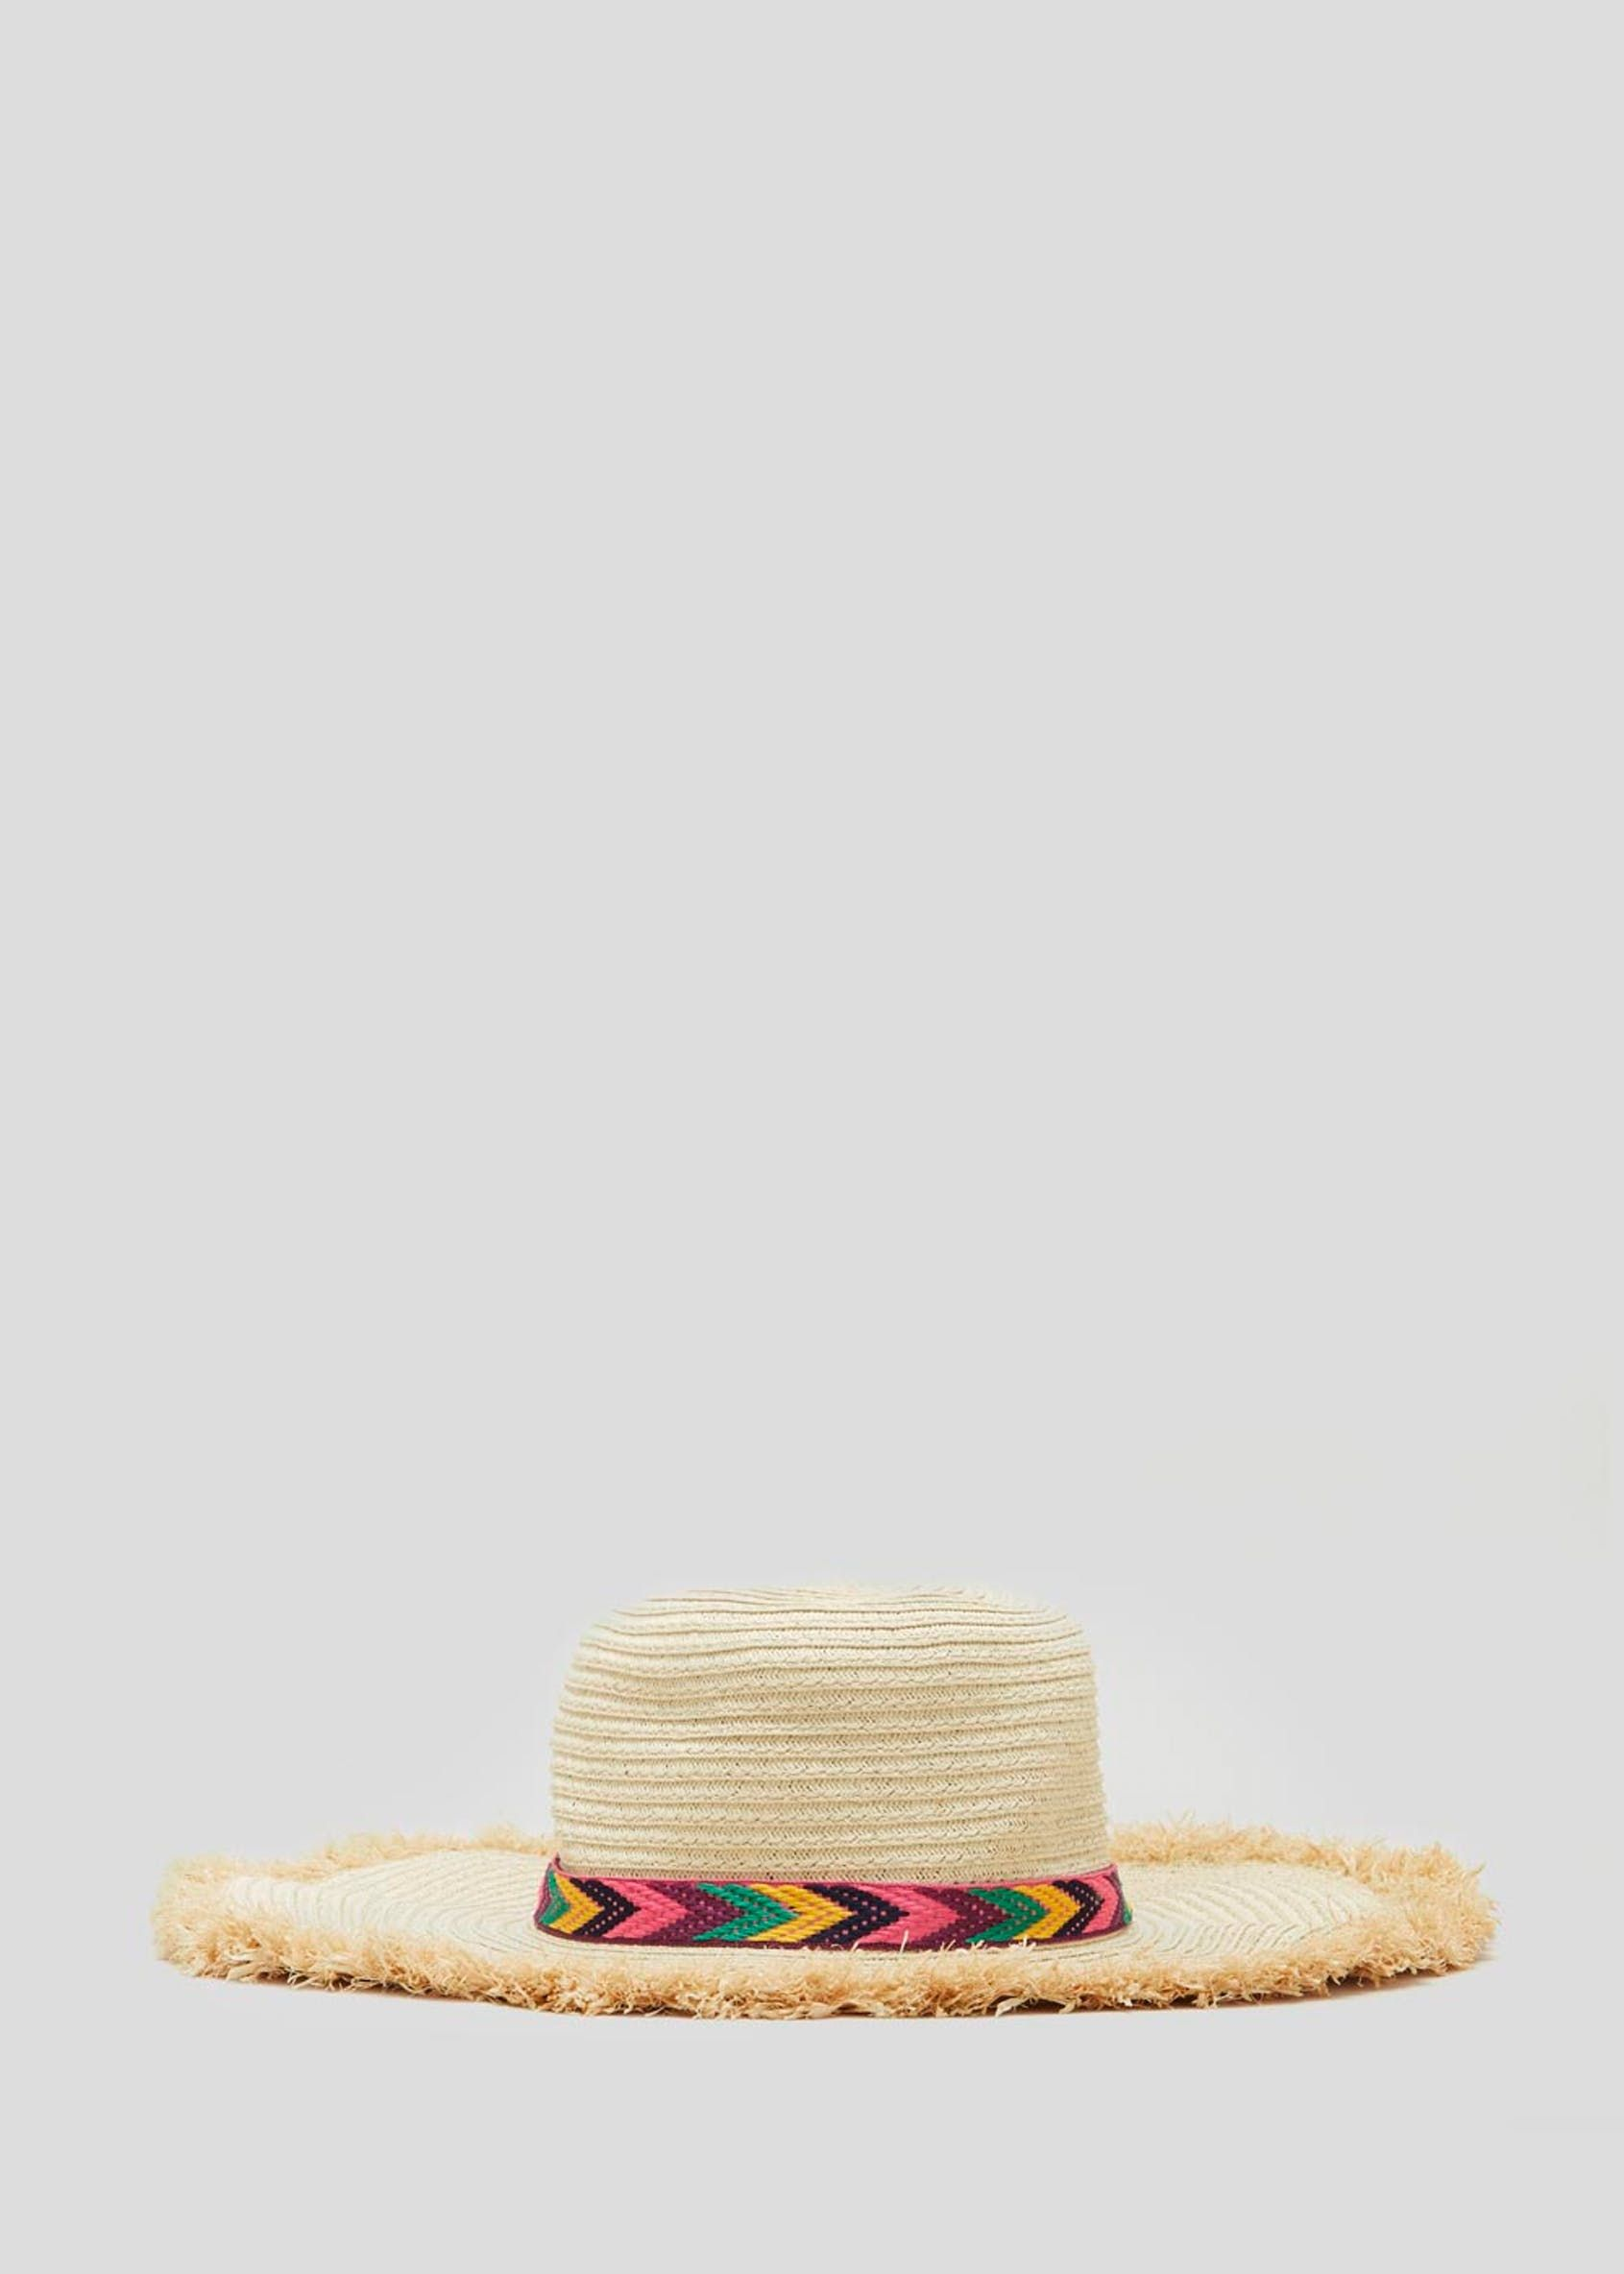 3a40550e Chevron Wide Brim Straw Hat Matalan Ibiza Spain Spanish Mexico Mexican  Summer Style fun shade wide